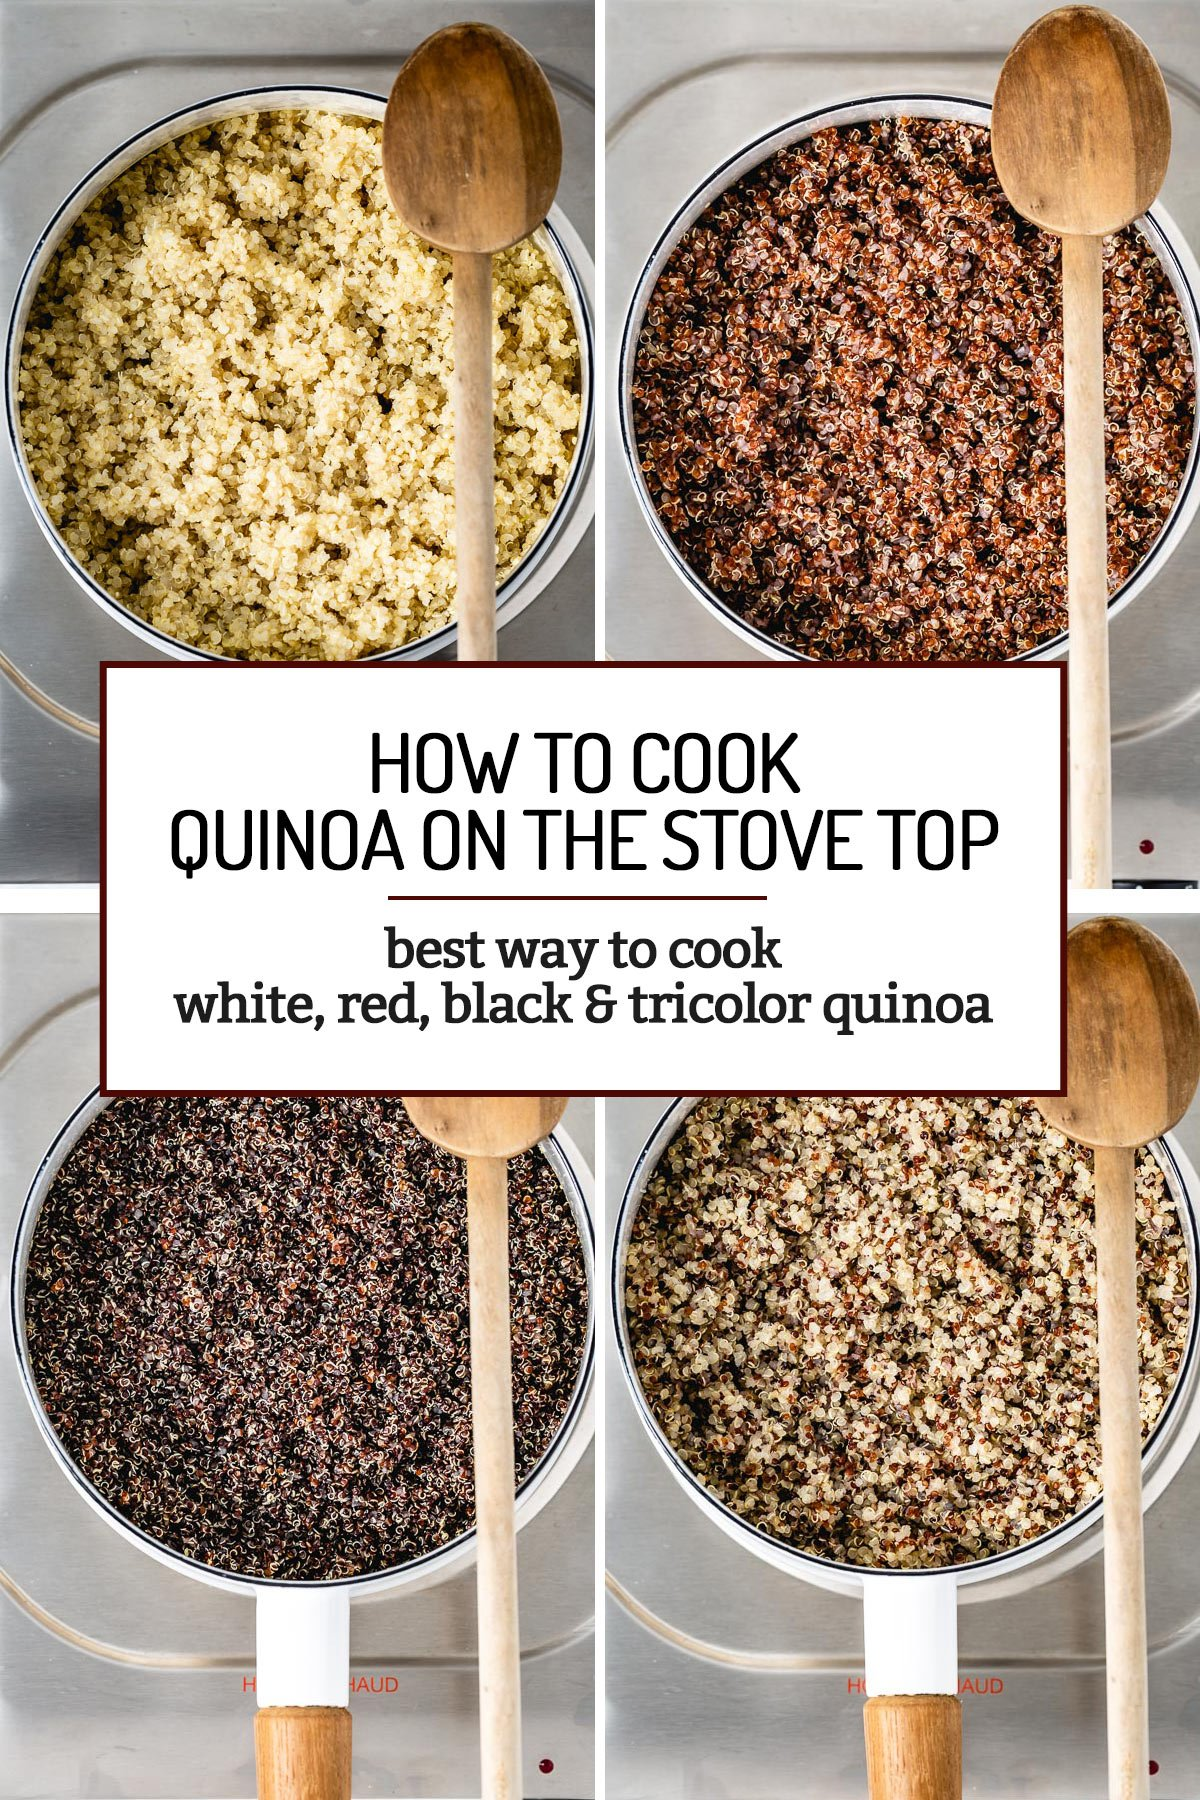 White, red, black, and tricolor cooked quinoa fluffed in pan with wooden spoon on the side